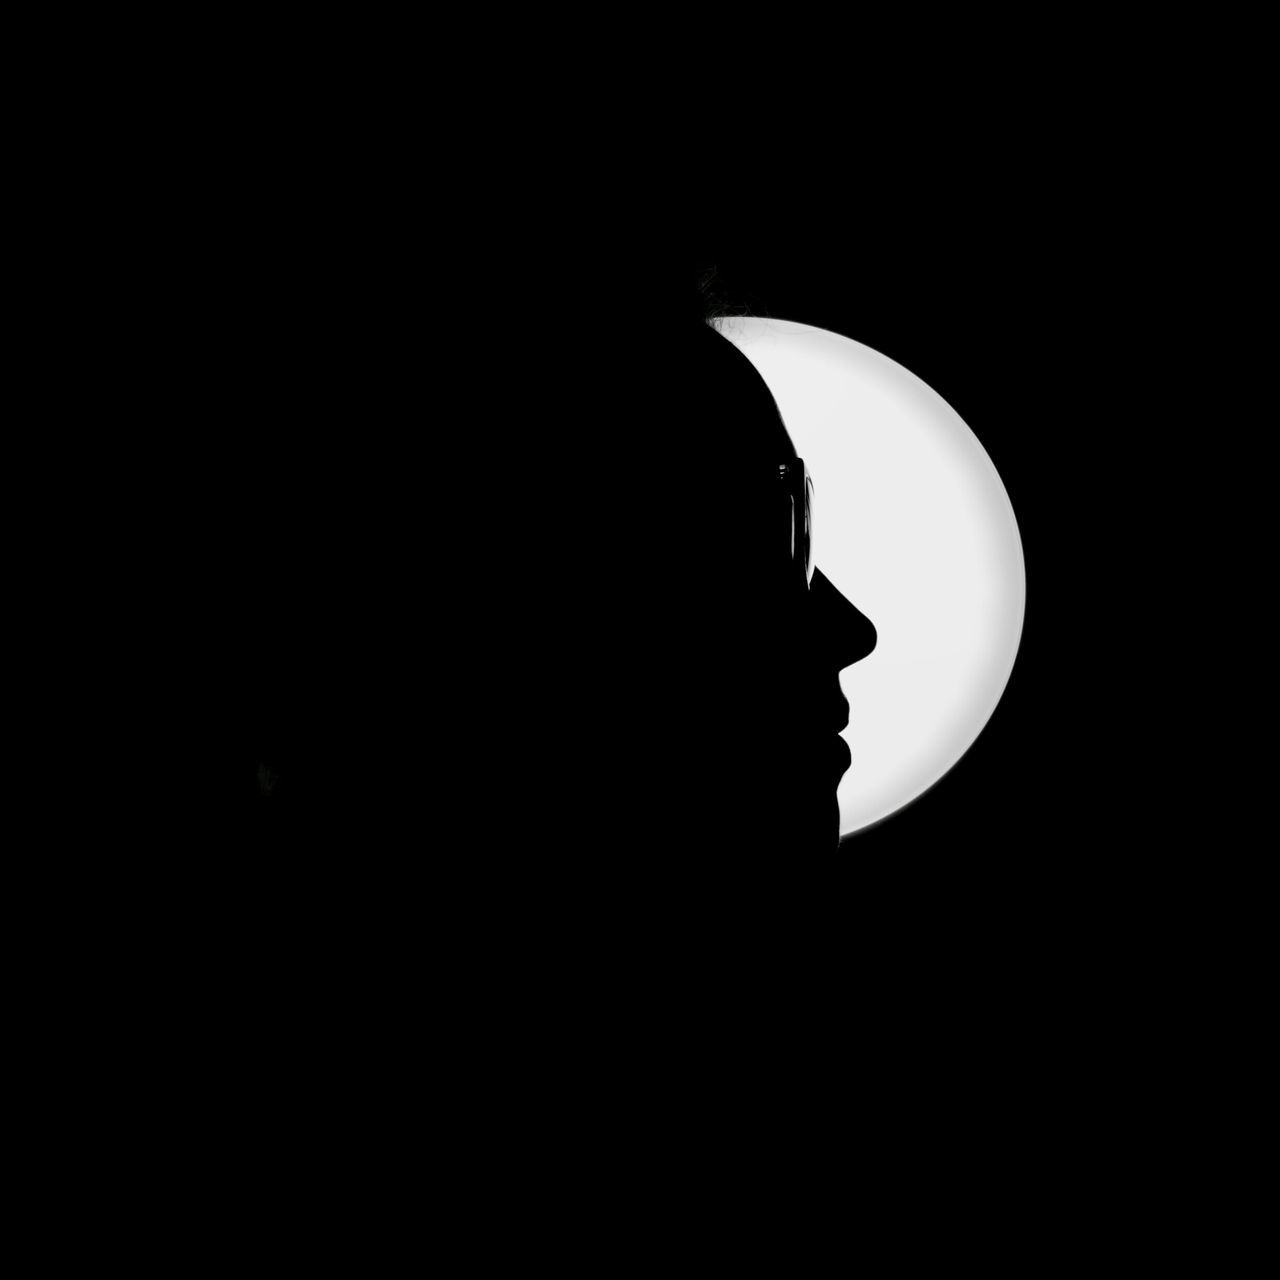 Person Against Moon At Night